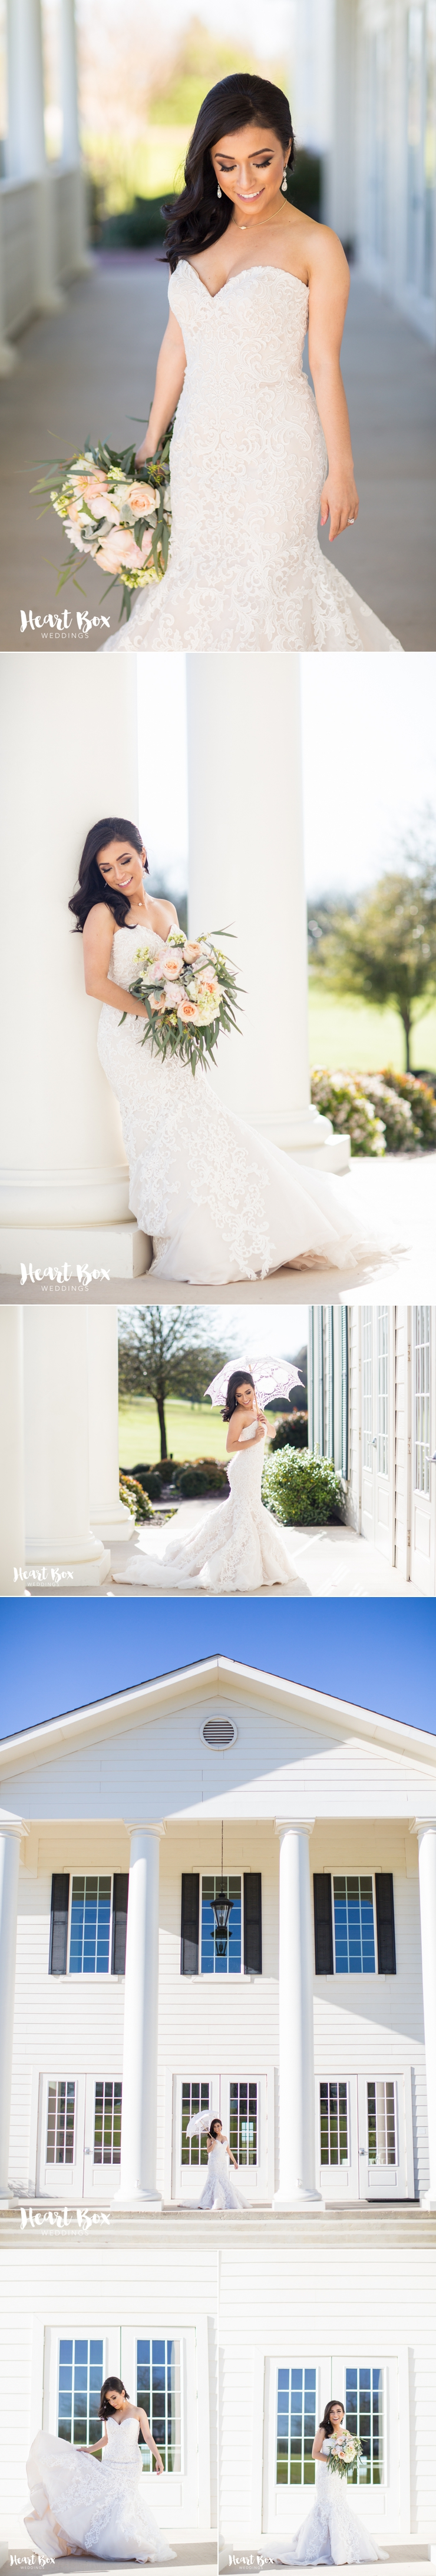 Stephanie Feliciano Bridal Blog Collages 5.jpg